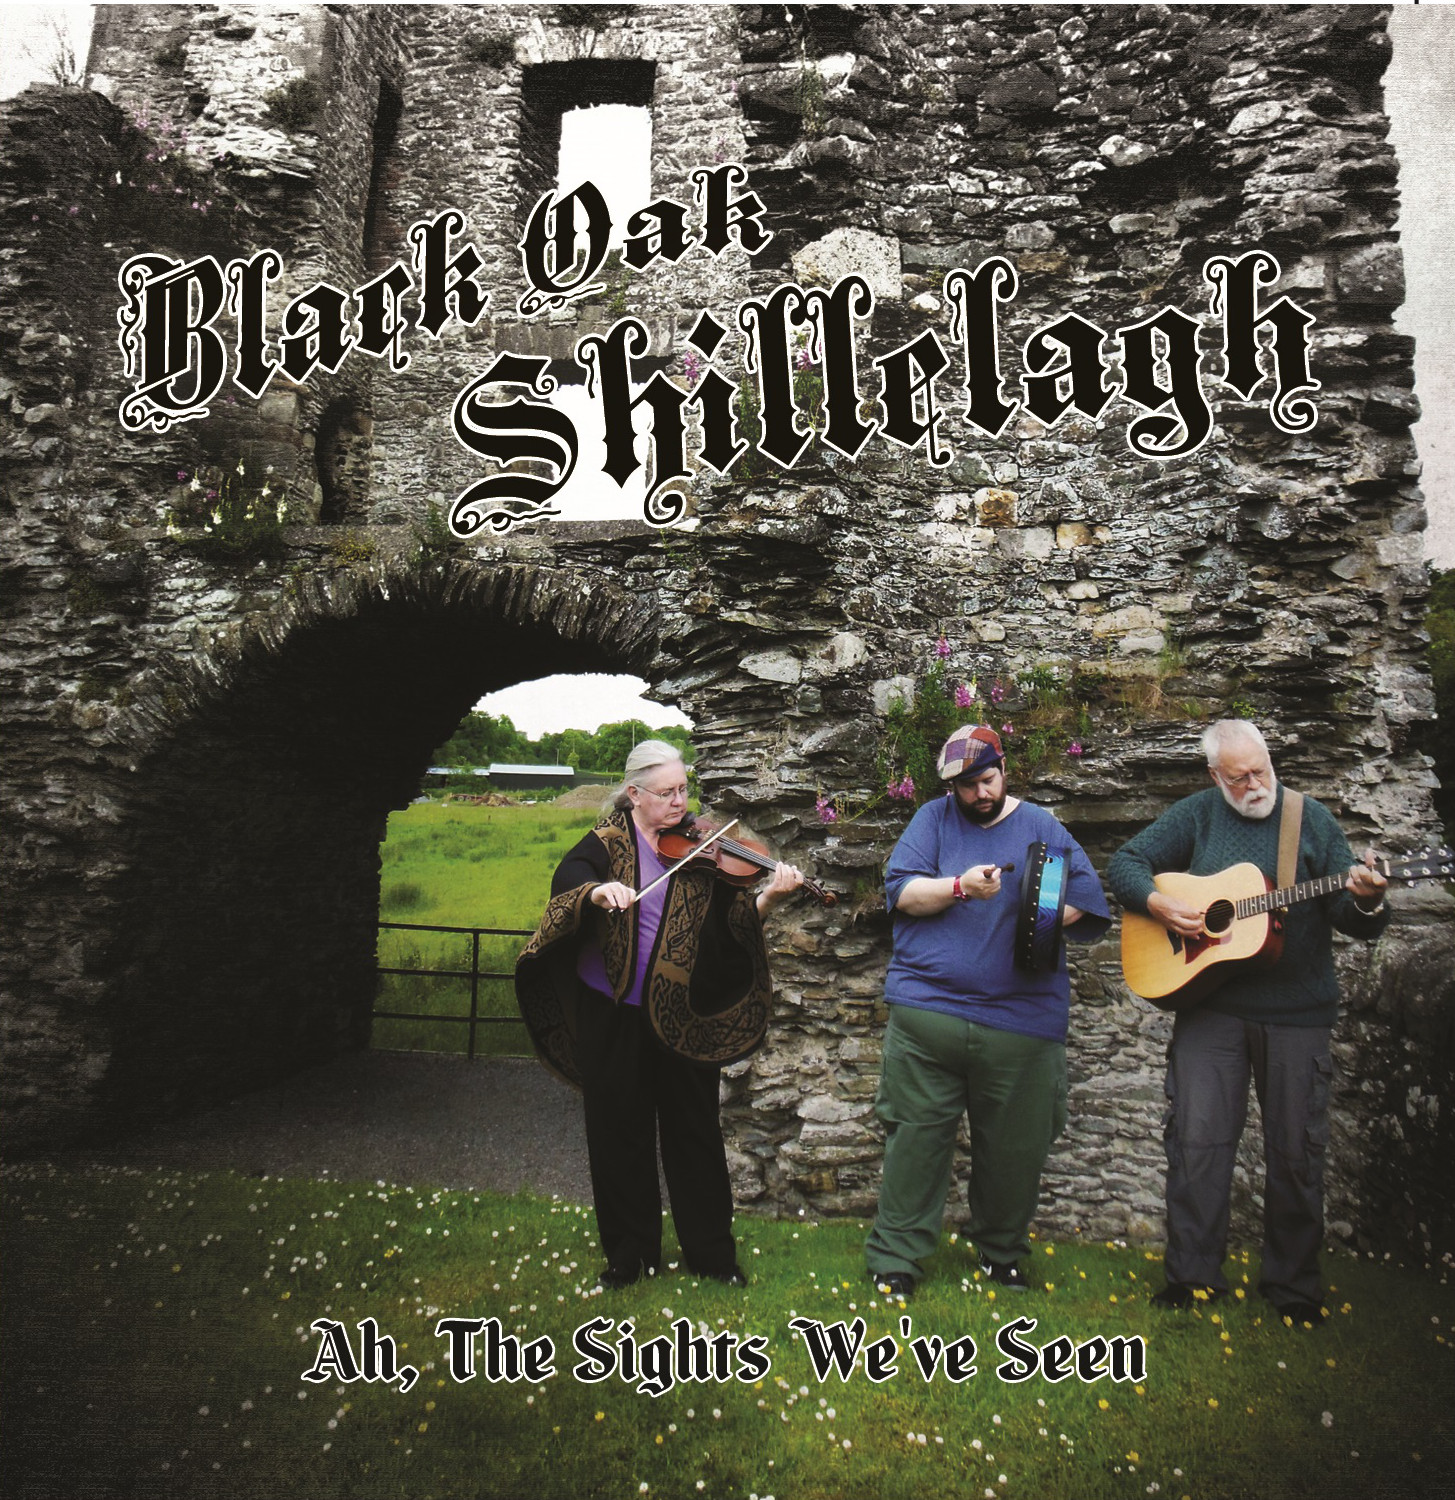 Front cover of Ah, The Sights We've Seen CD